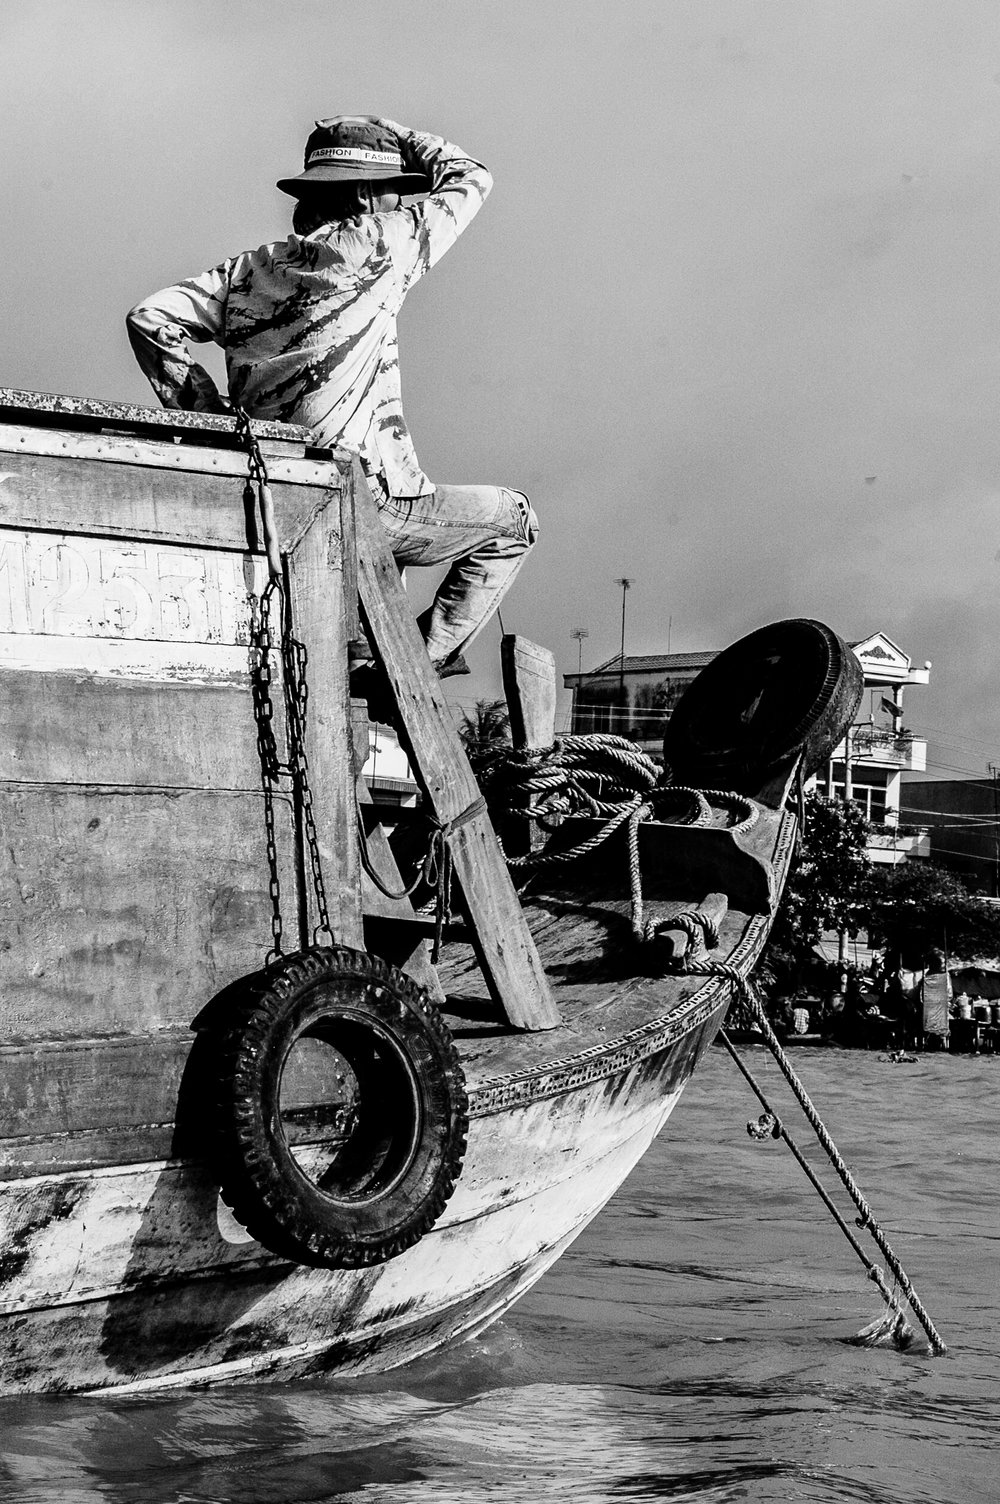 LifeontheMekongDelta-26.jpg